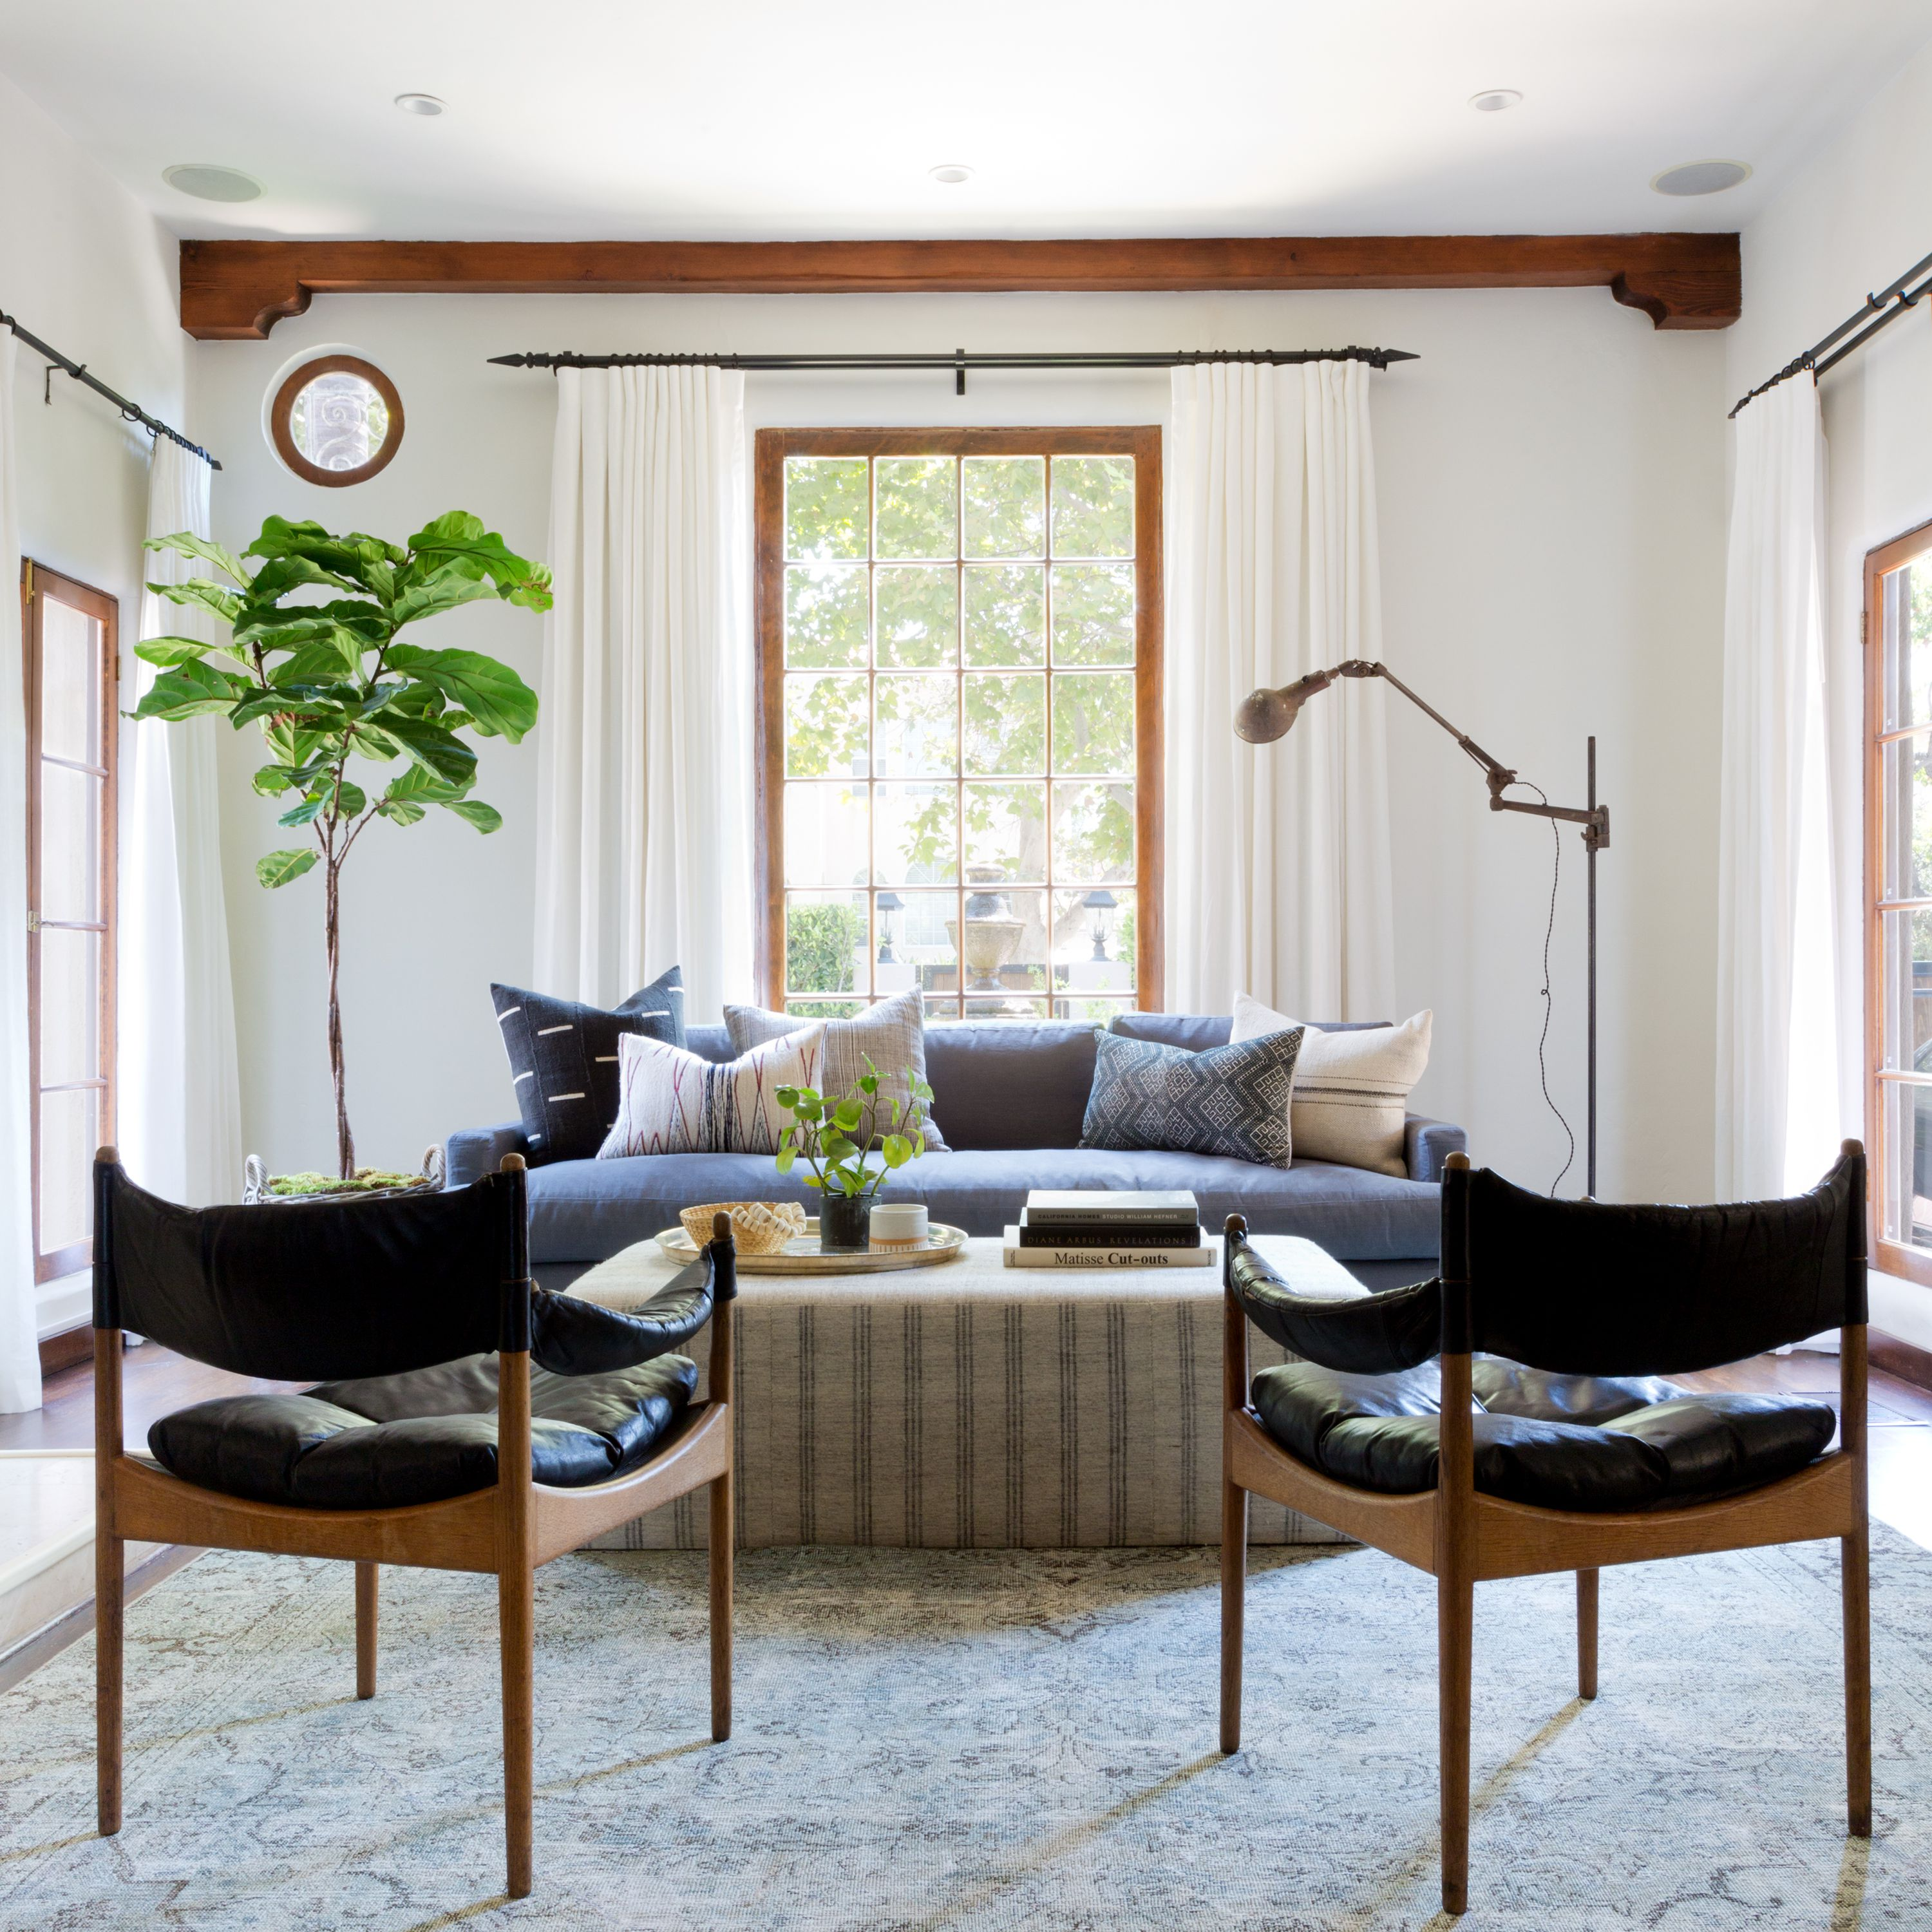 An Interior Designer Explains Which 5 Colors Go With Gray, So You Can Nail the Look